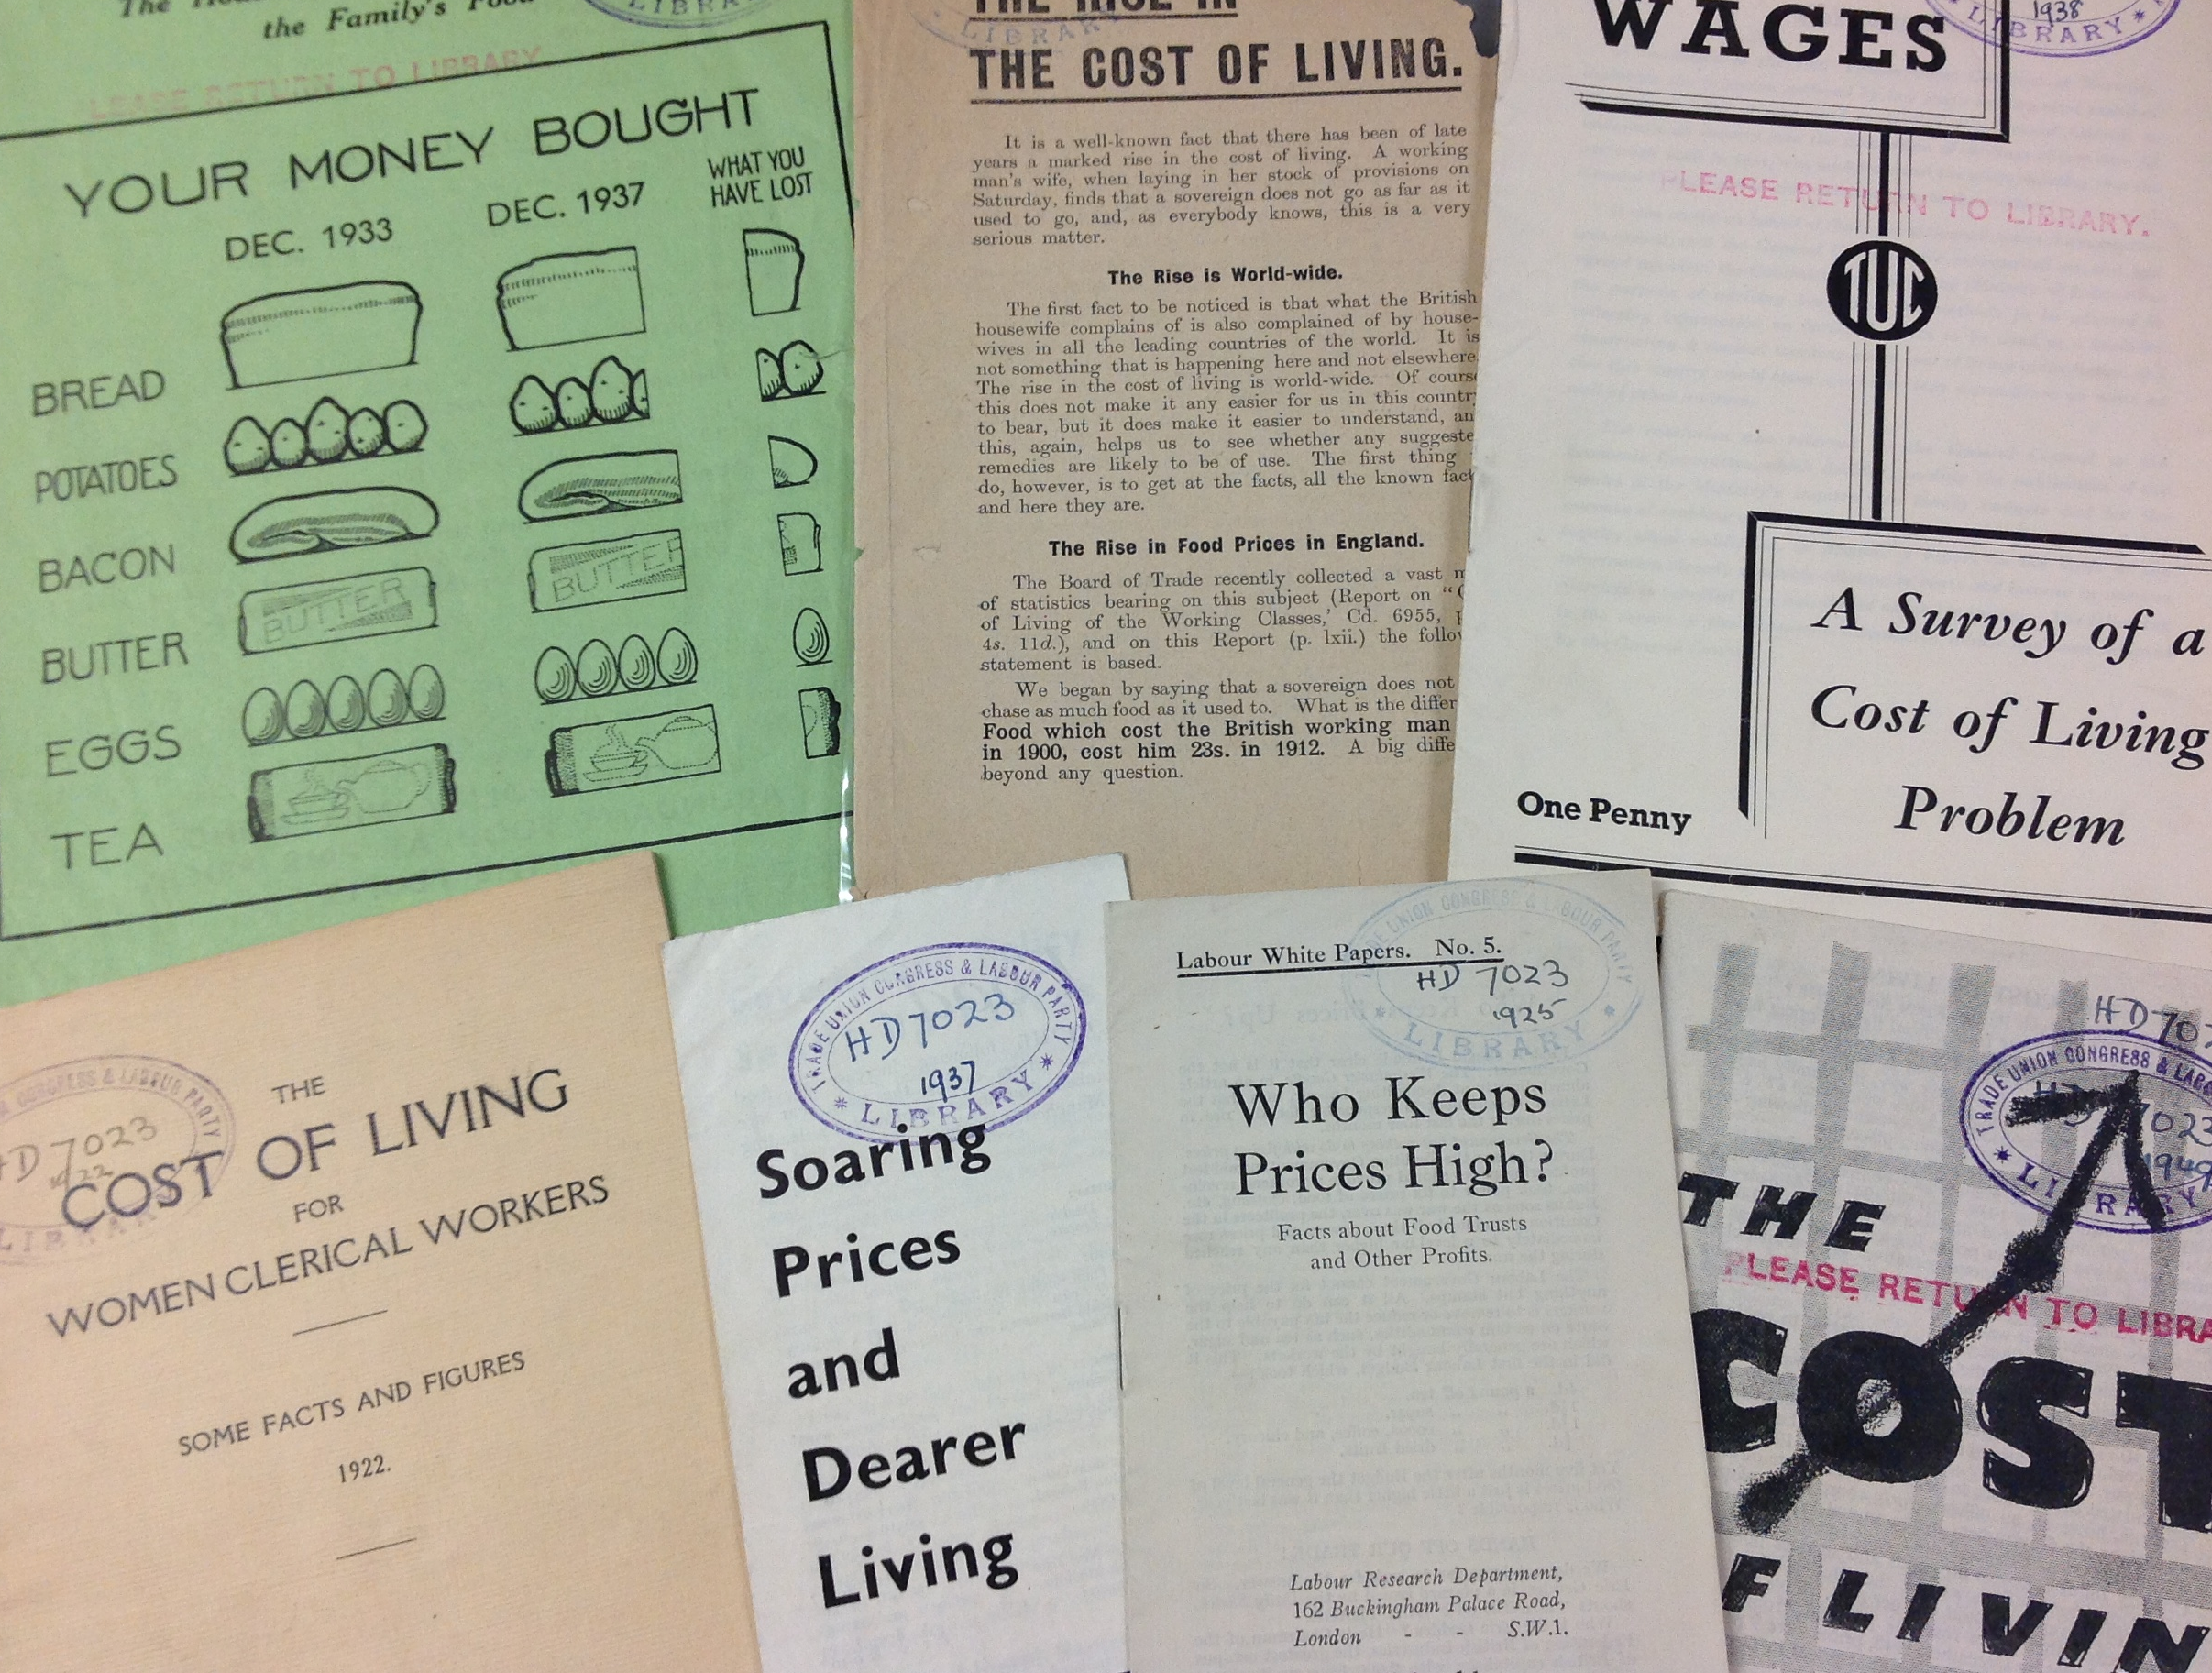 a collection of pamphlets and articles about the rise in the cost of